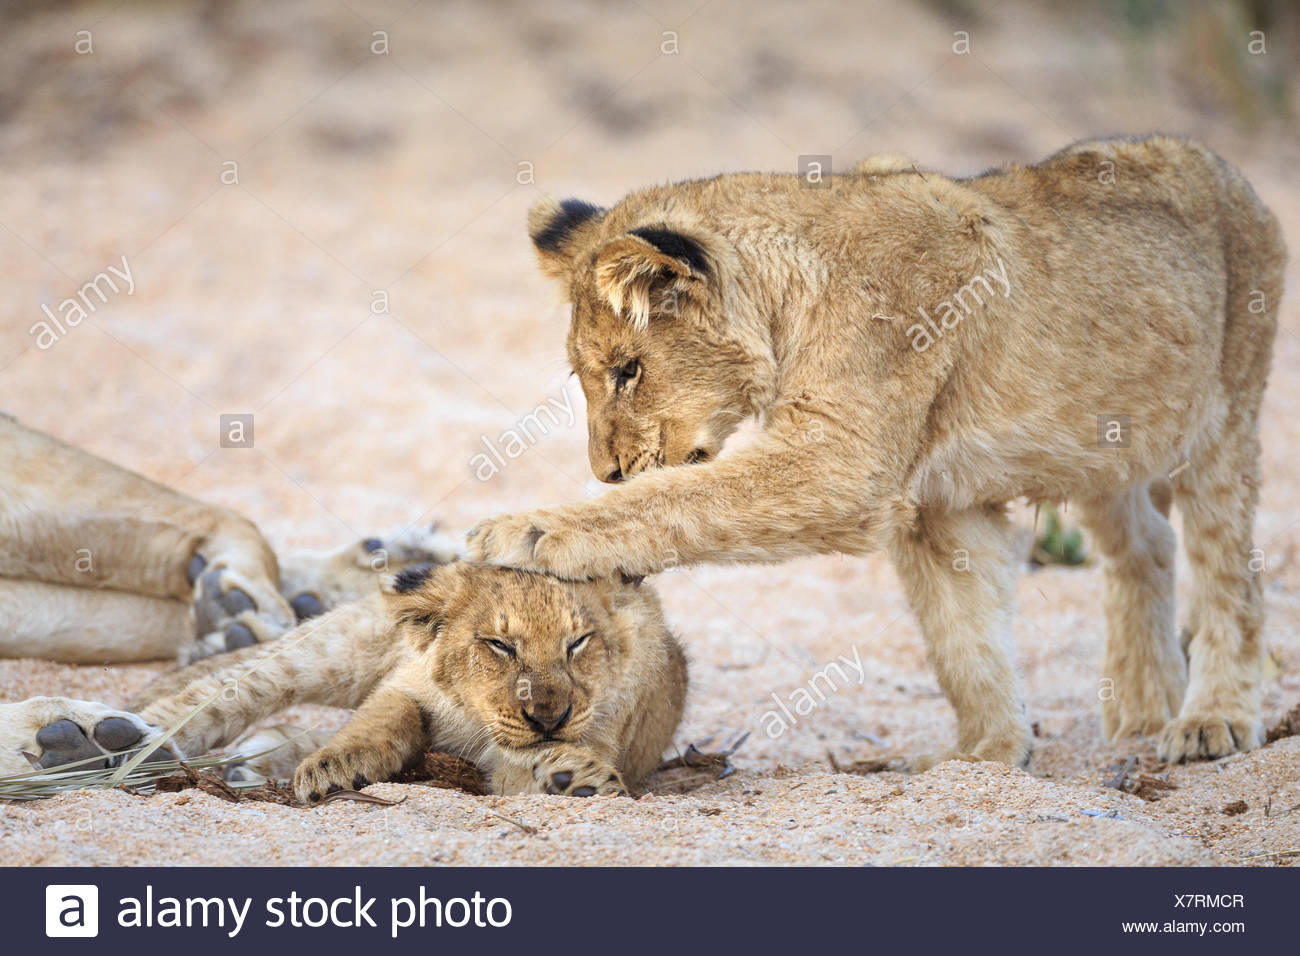 Lion cubs, Panthera leo, playing in a sandy dry riverbed. - Stock Image